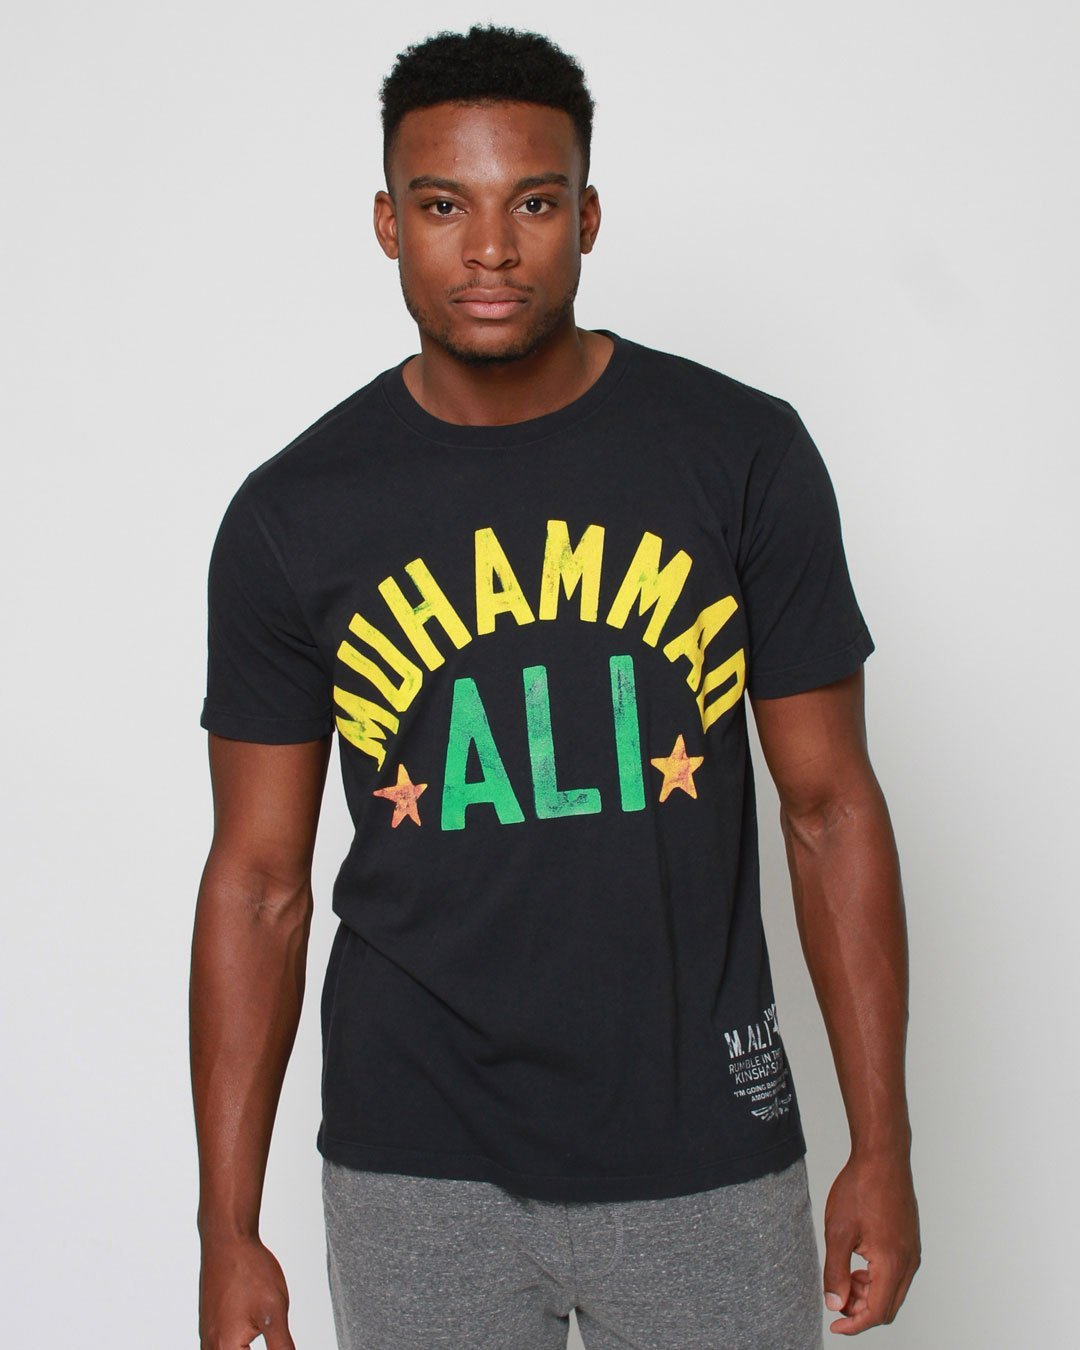 Ali Rumble Zaire 1974 Tee - Copasetic Clothing Ltd. dba Roots of Fight